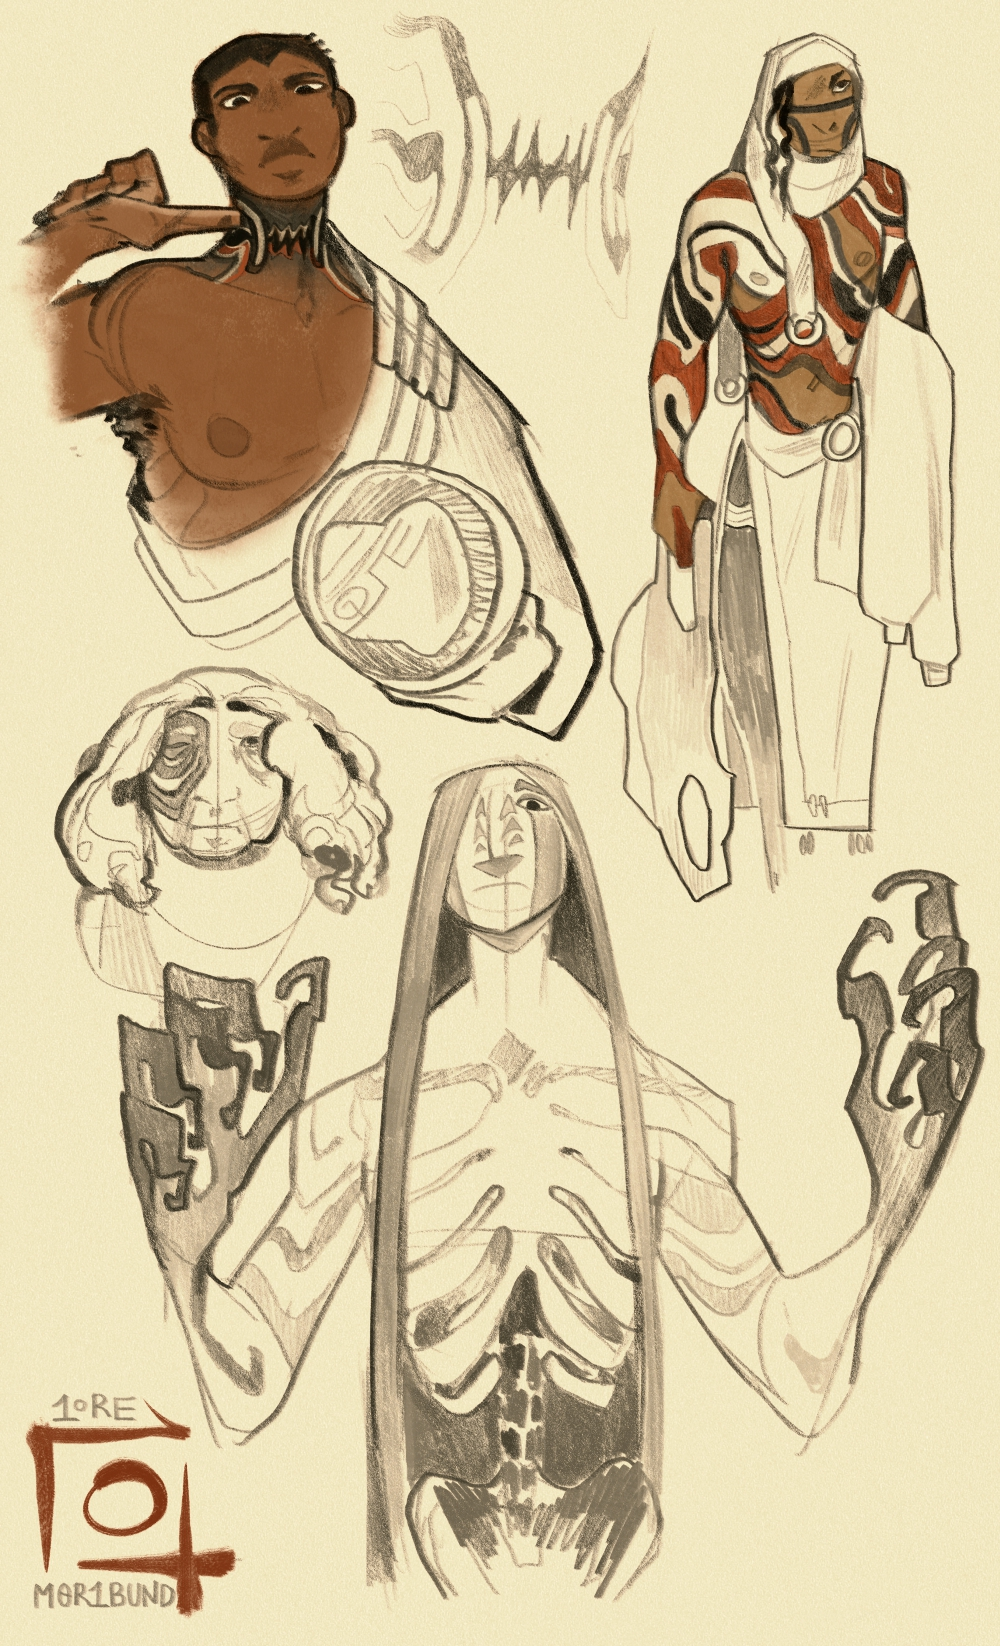 Many sketches of the various mun carried by different Sauntiaq. Rayet traces the jagged, teeth-like mun around her neck, which became the emblem used by the Free Companies. Deputy Kabinai has full-body mun which wind like ropes around them. One individual is missing their right eye, where black scars emanate from the wound. The god from the disease himself makes an appearance, with mun styled like tear streaks down his cheeks, as well as various scars winding in and out of his exposed ribcage and talon-like fingers.